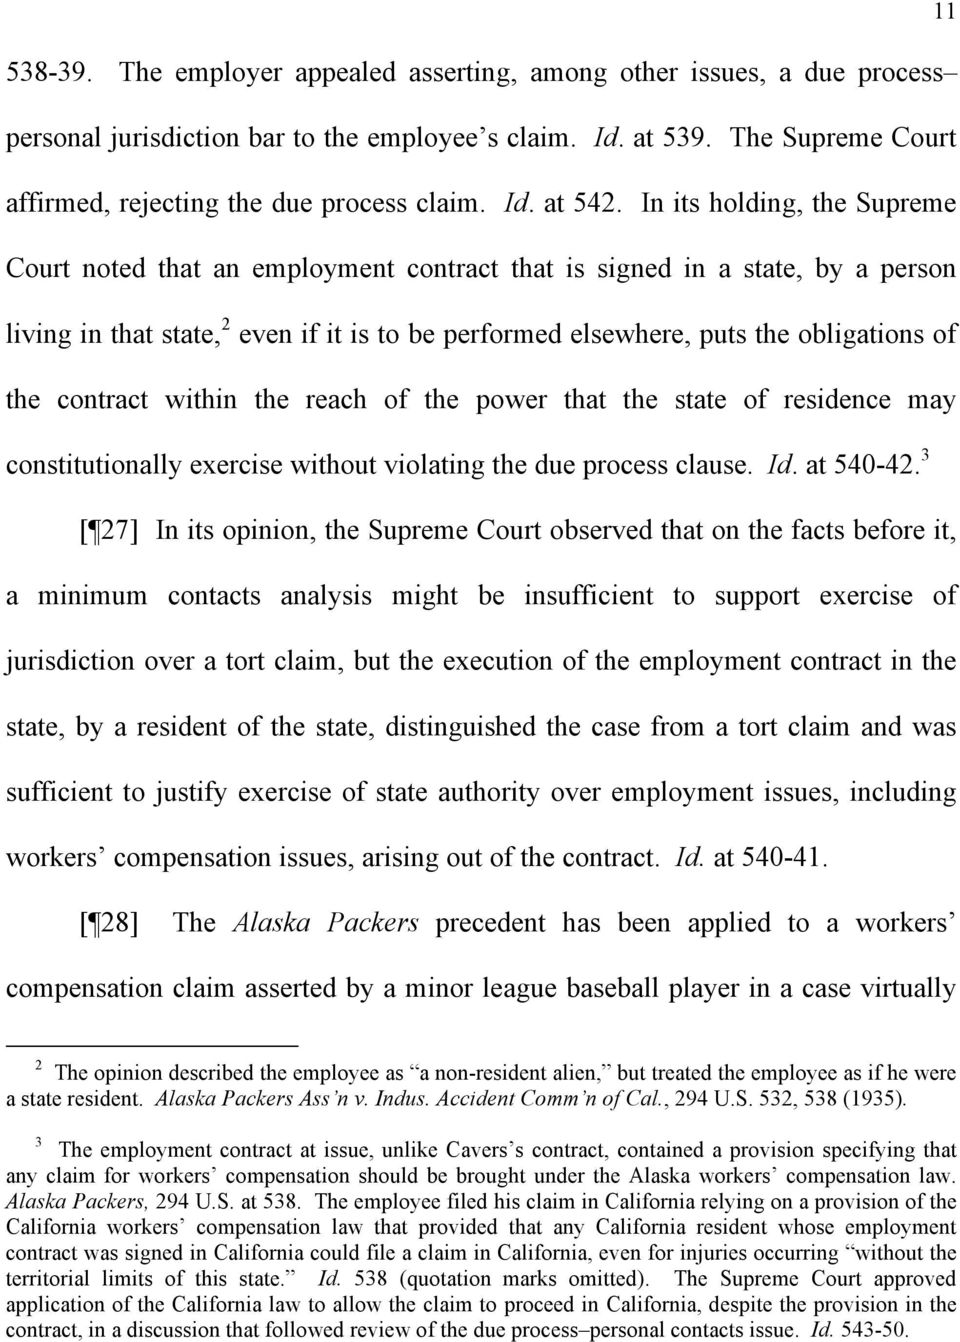 In its holding, the Supreme Court noted that an employment contract that is signed in a state, by a person living in that state, 2 even if it is to be performed elsewhere, puts the obligations of the